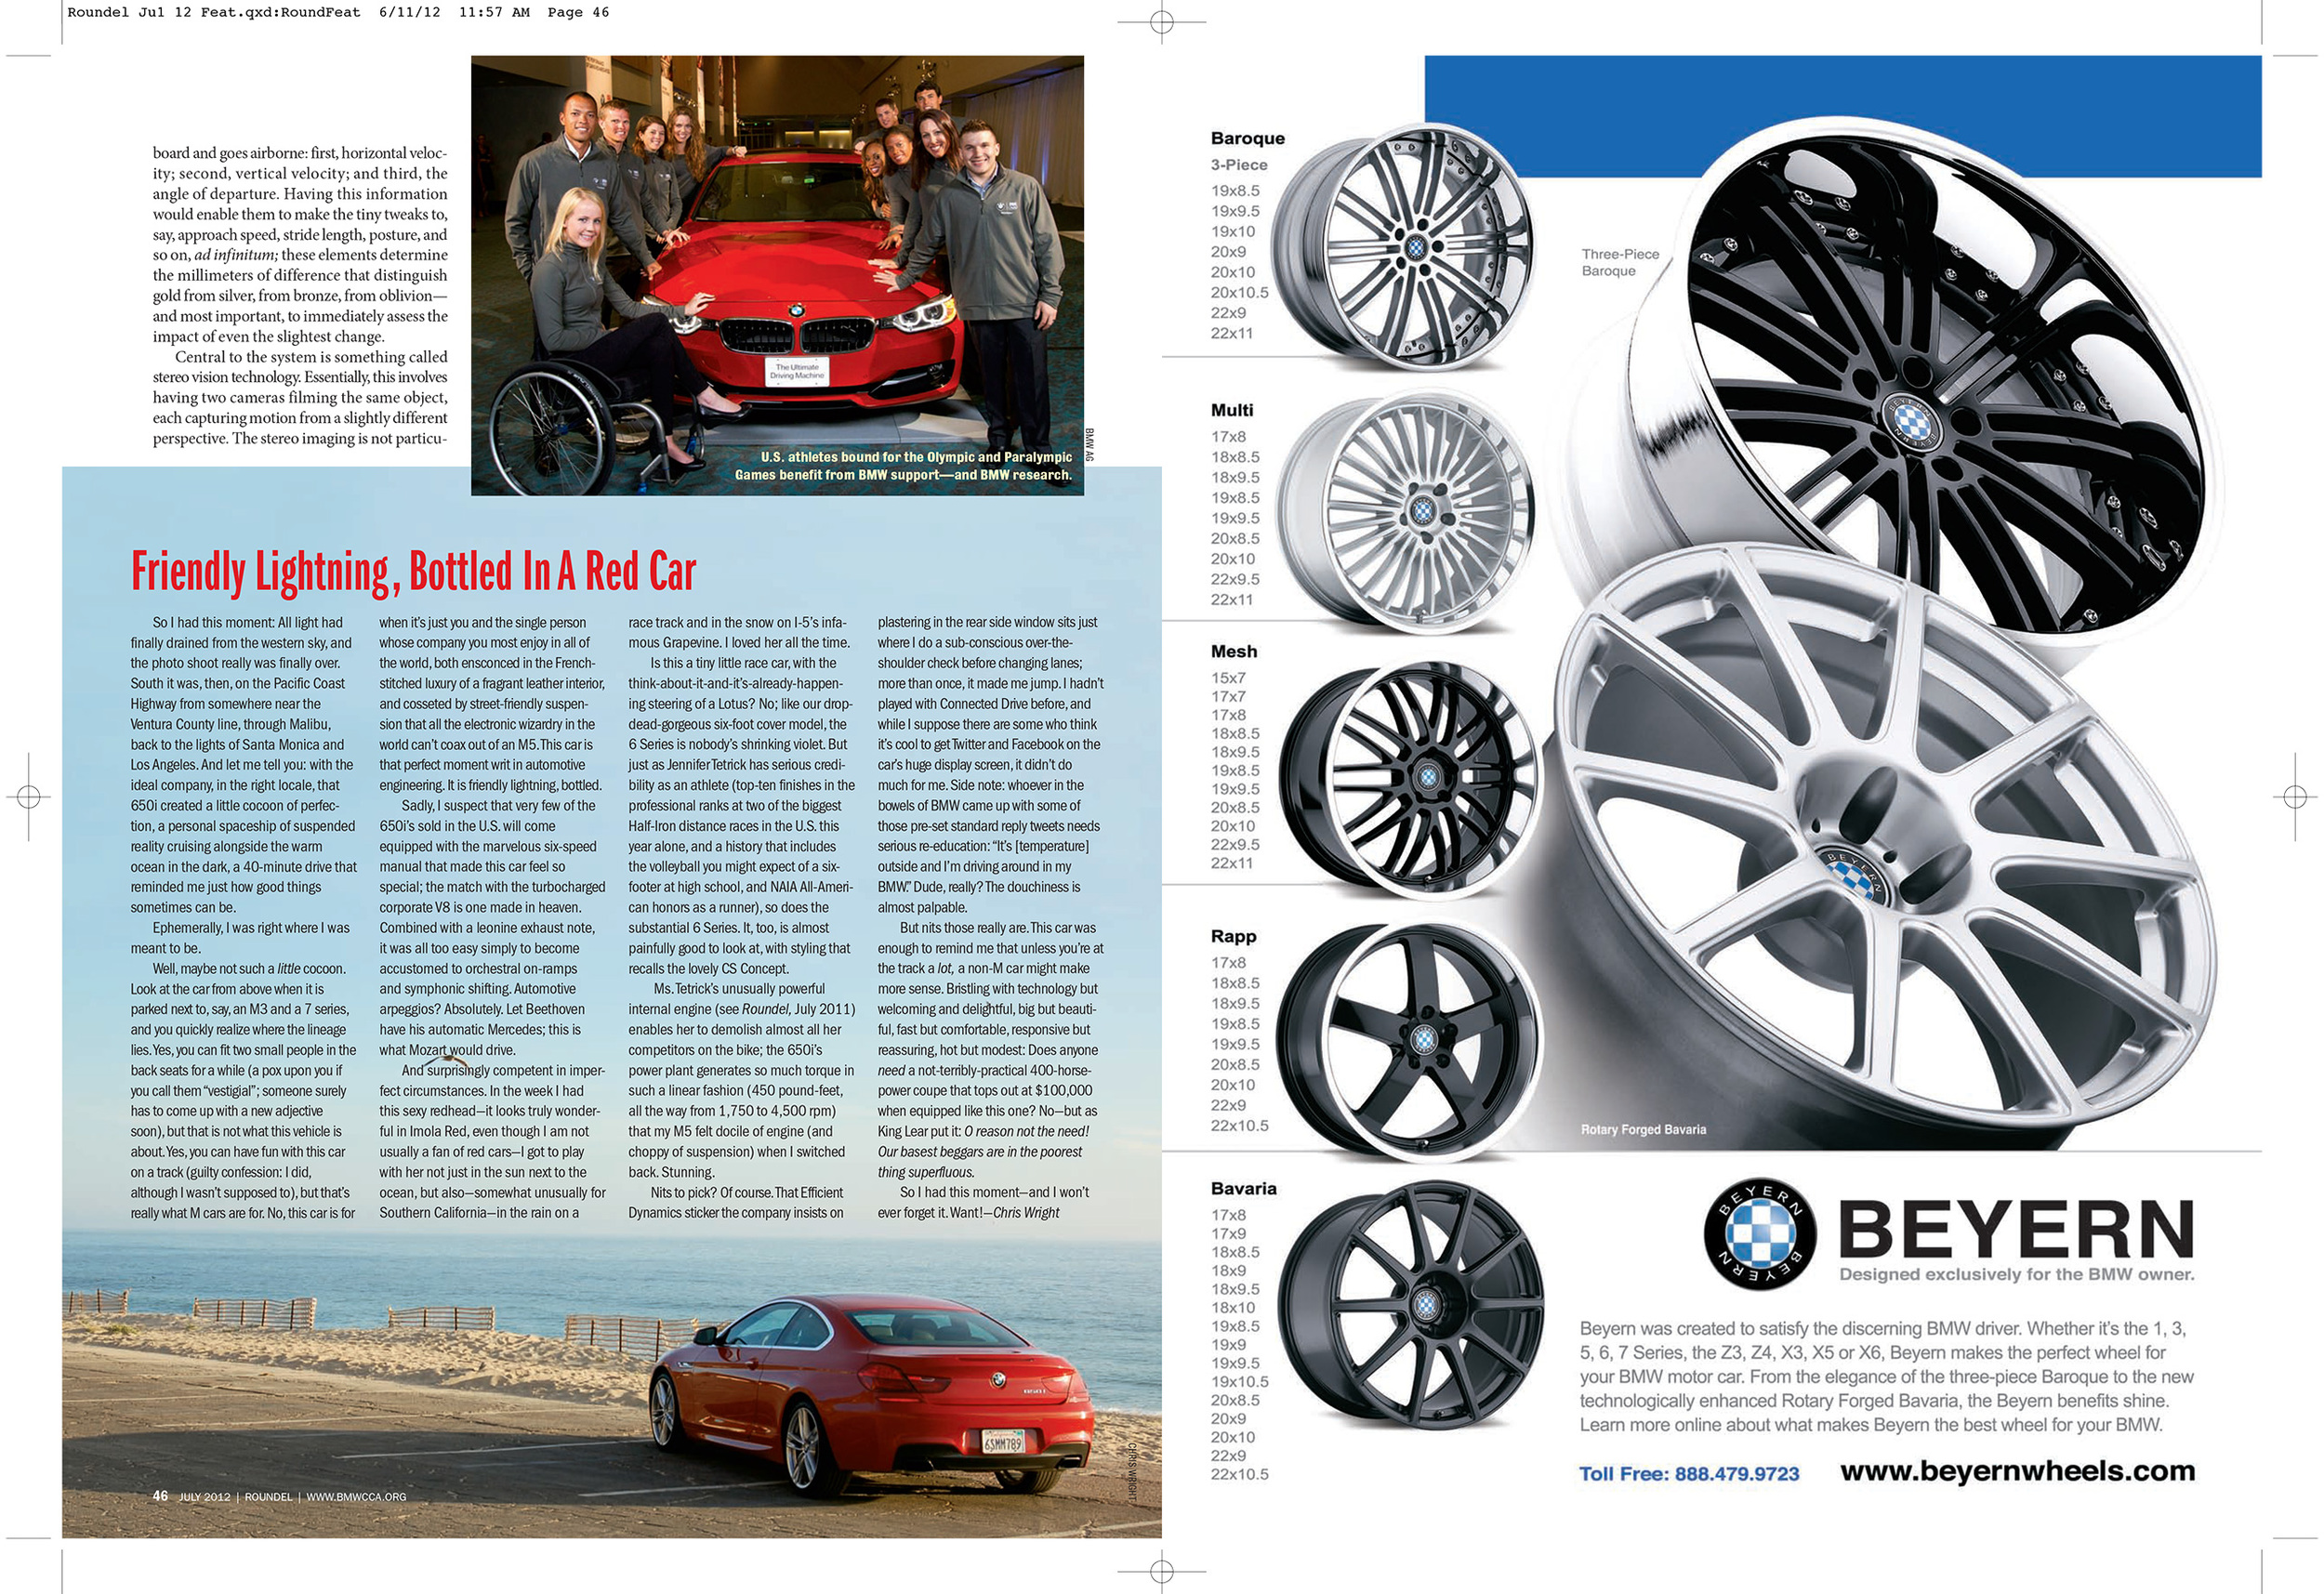 extract-from-Roundel-July-2012-2.jpg